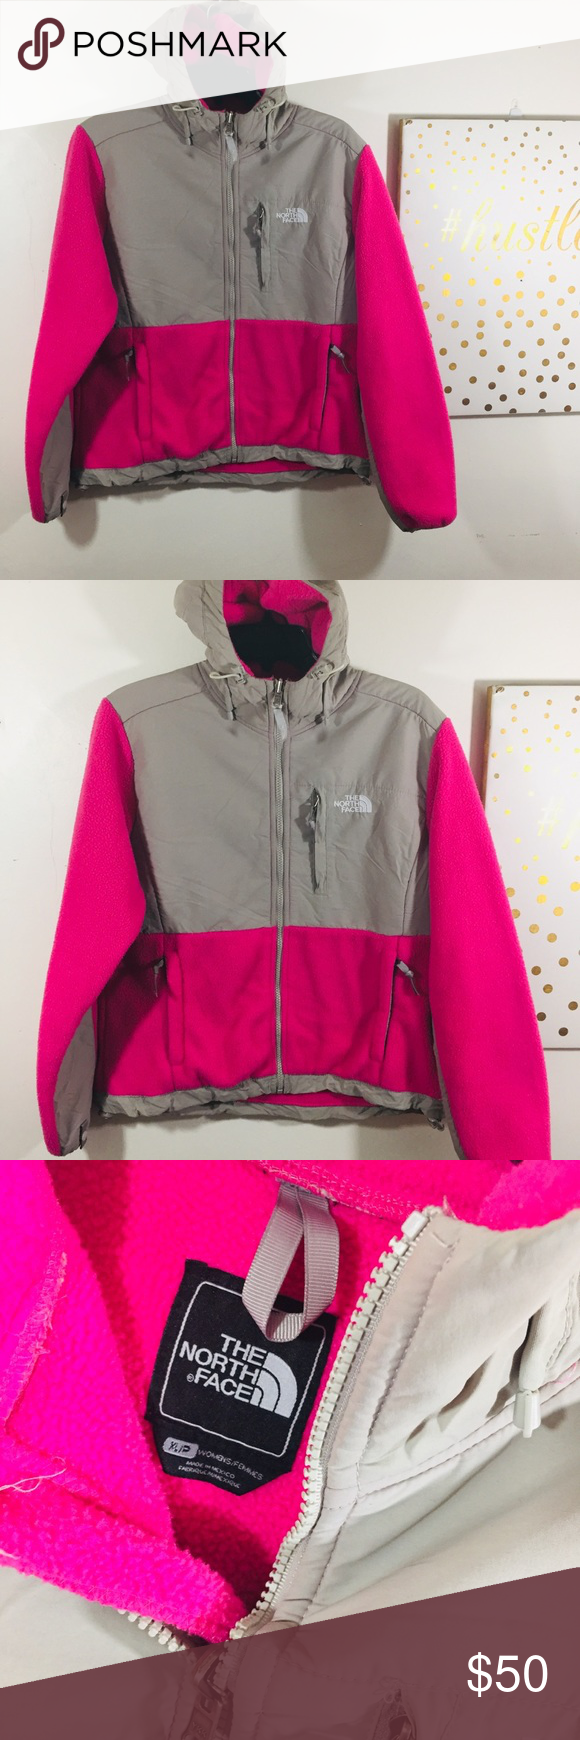 The North Face Pink And Gray Fleece Jacket Grey Fleece Jacket Fleece Jacket Pink Grey [ 1740 x 580 Pixel ]